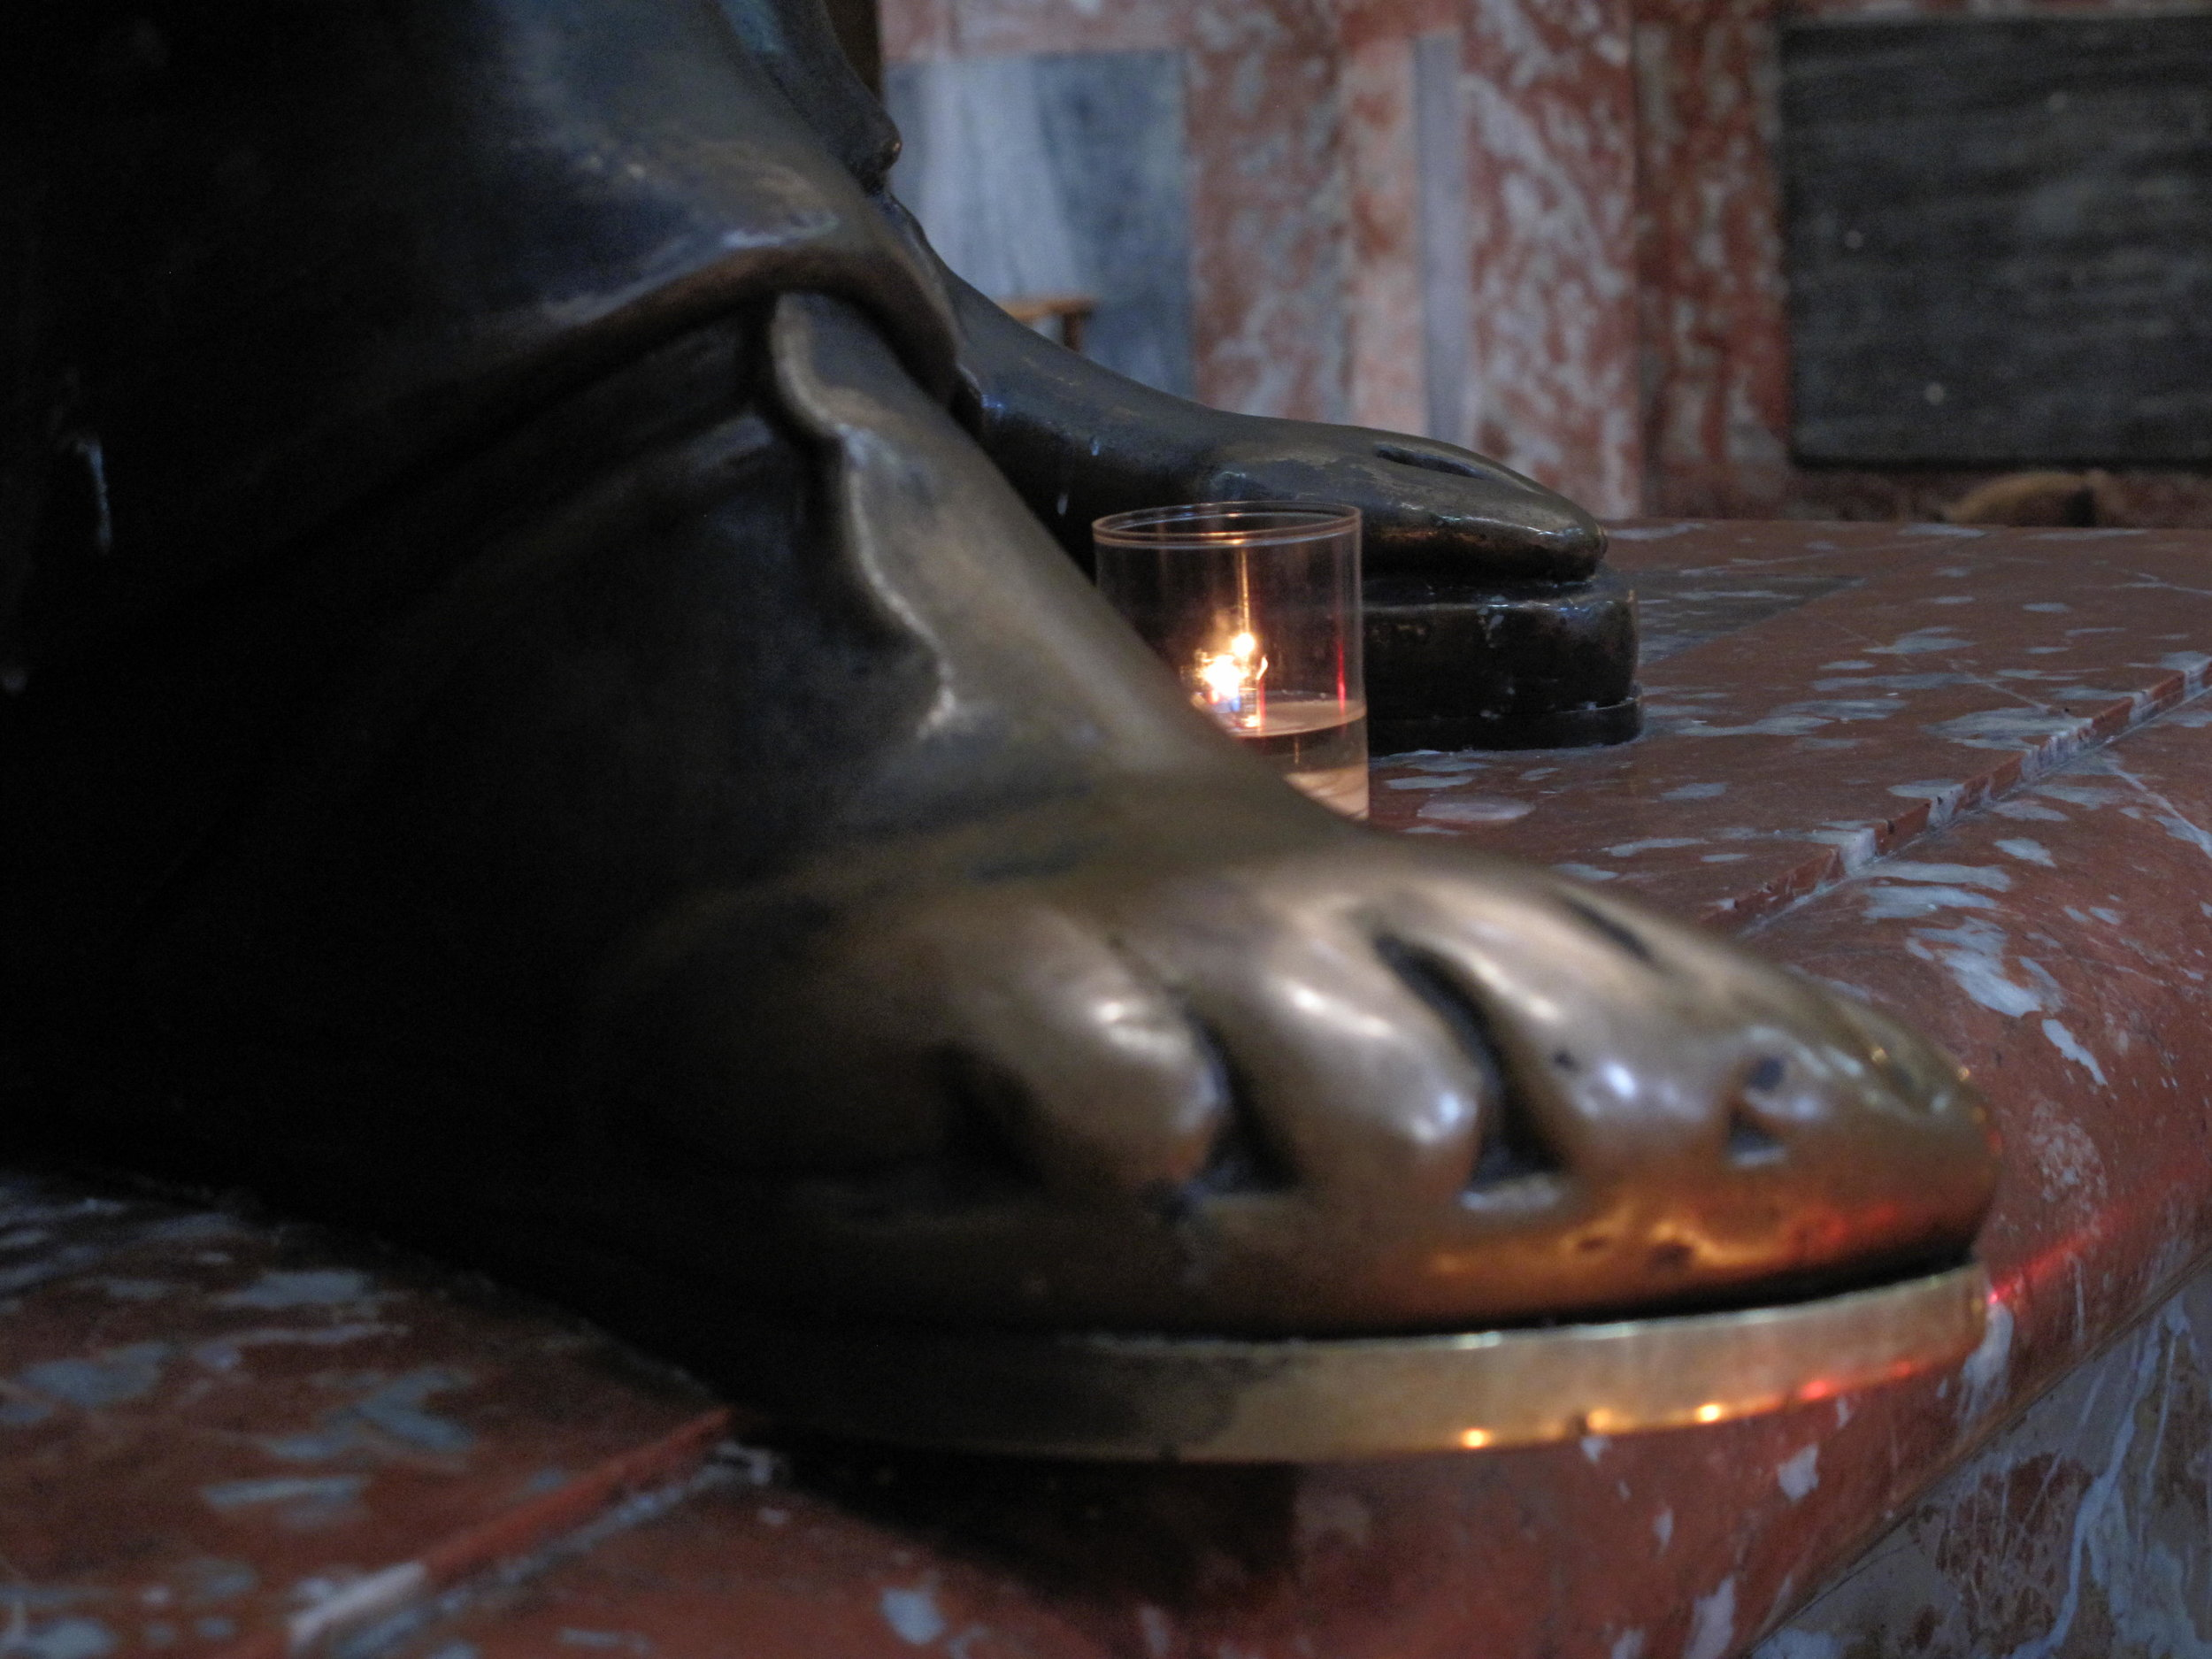 Saint-Sulpice,_closeup_of_the_foot_of_the_statue_of_Saint-Peter.jpg